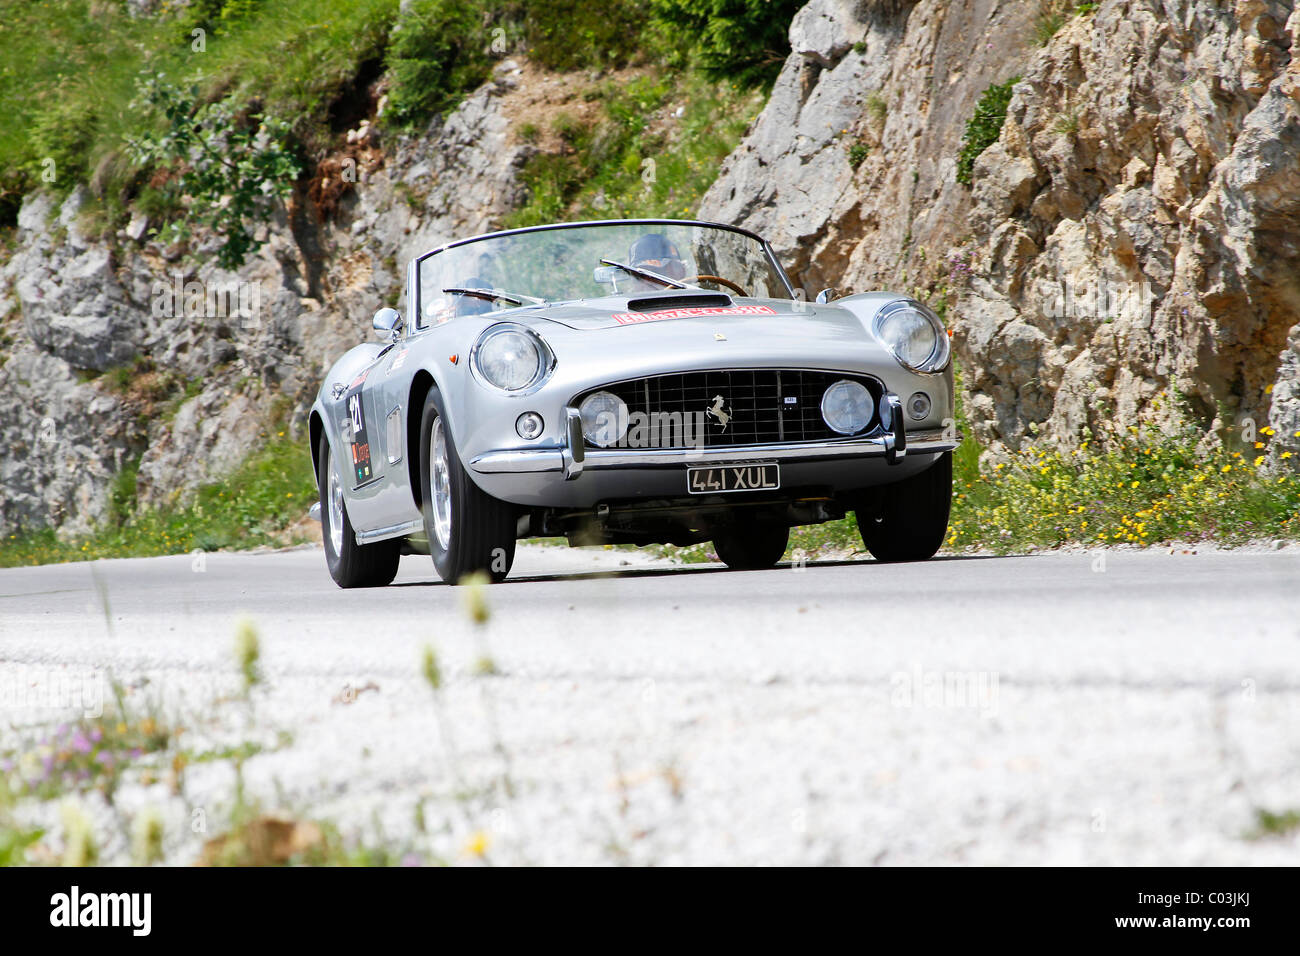 Ferrari 250 Gt Swb California Spyder Built In 1961 One Of The Most Stock Photo Alamy